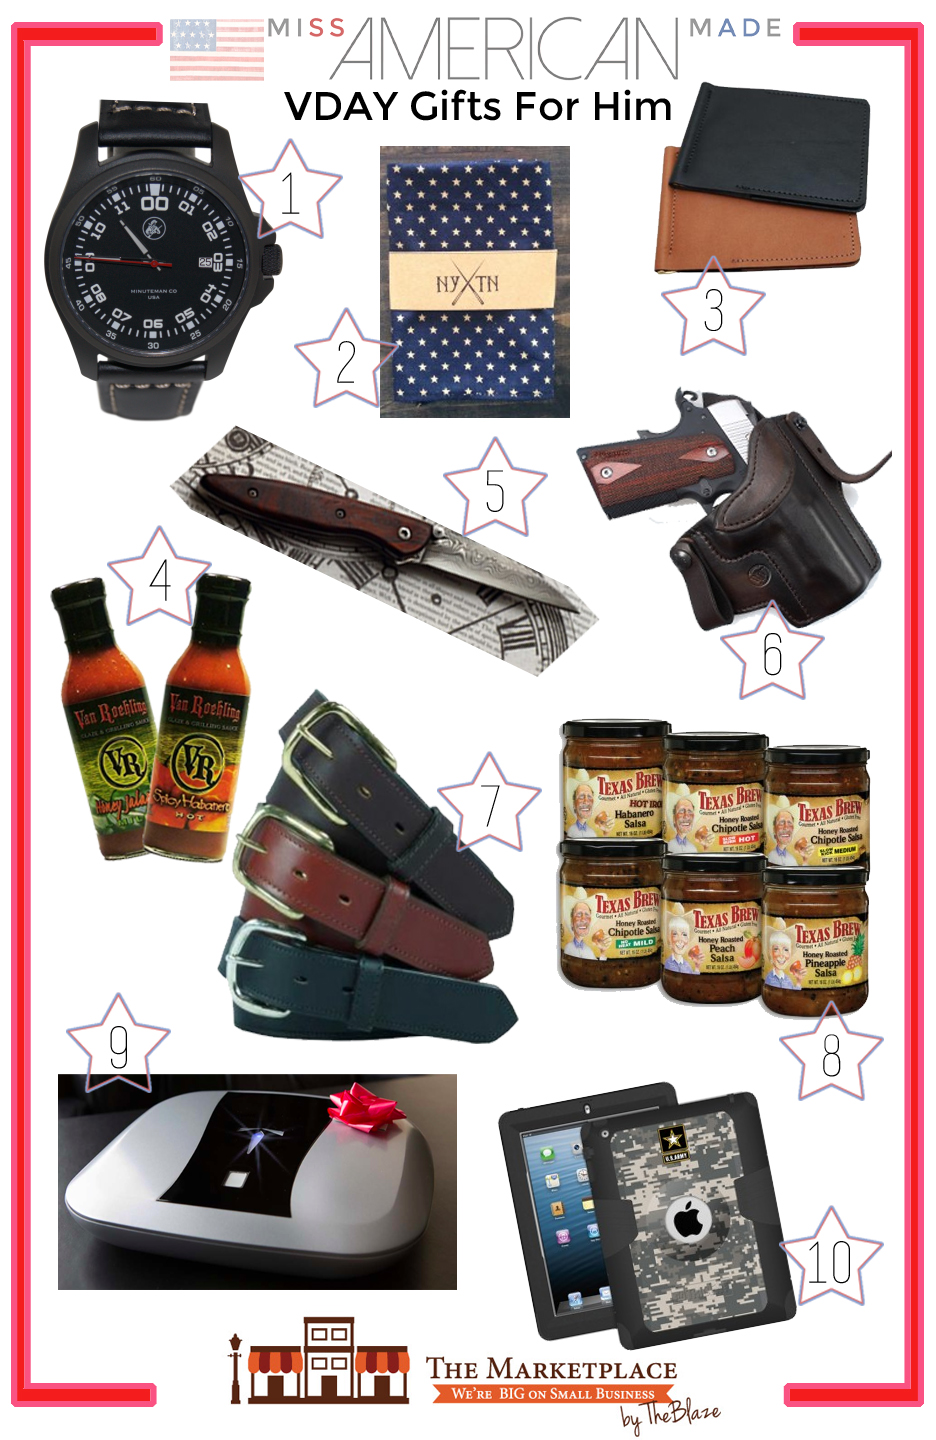 VDAY Gifts For Him From The Marketplace By The Blaze